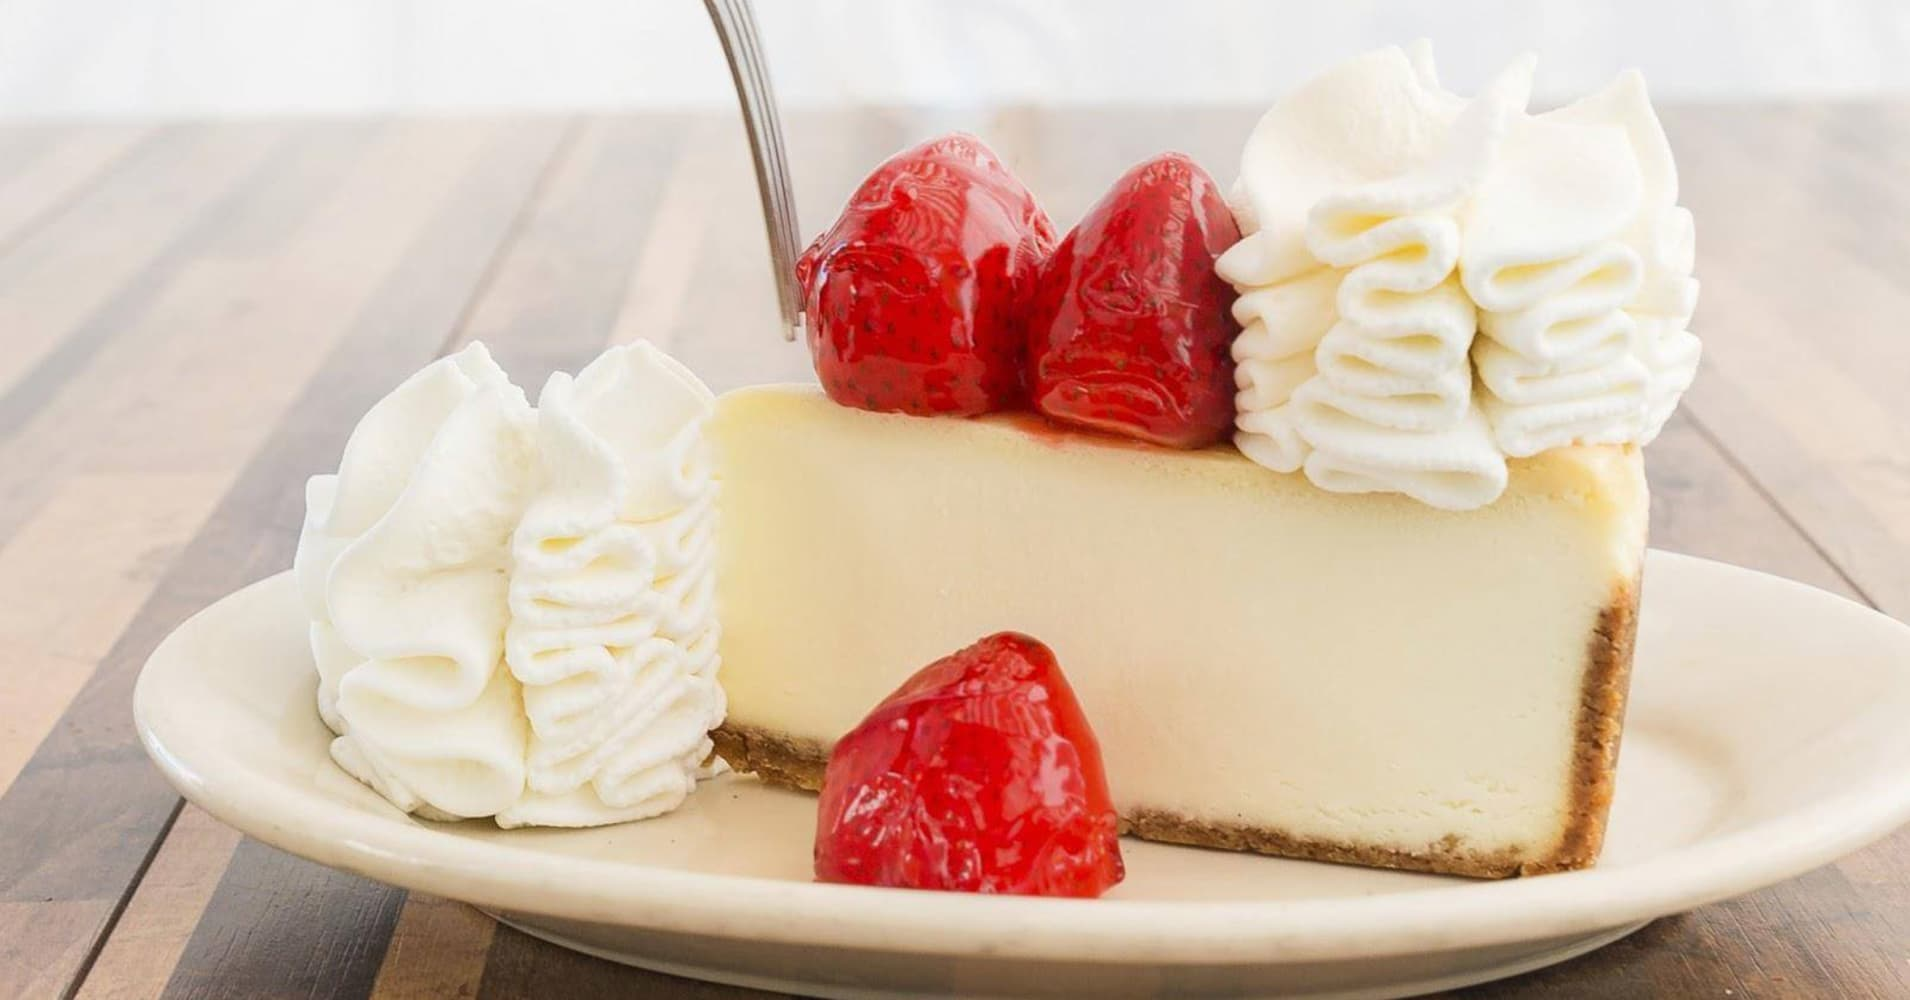 Cheesecake Factory's Free Cheesecake Promotion Goes Awry, One Person Arrested